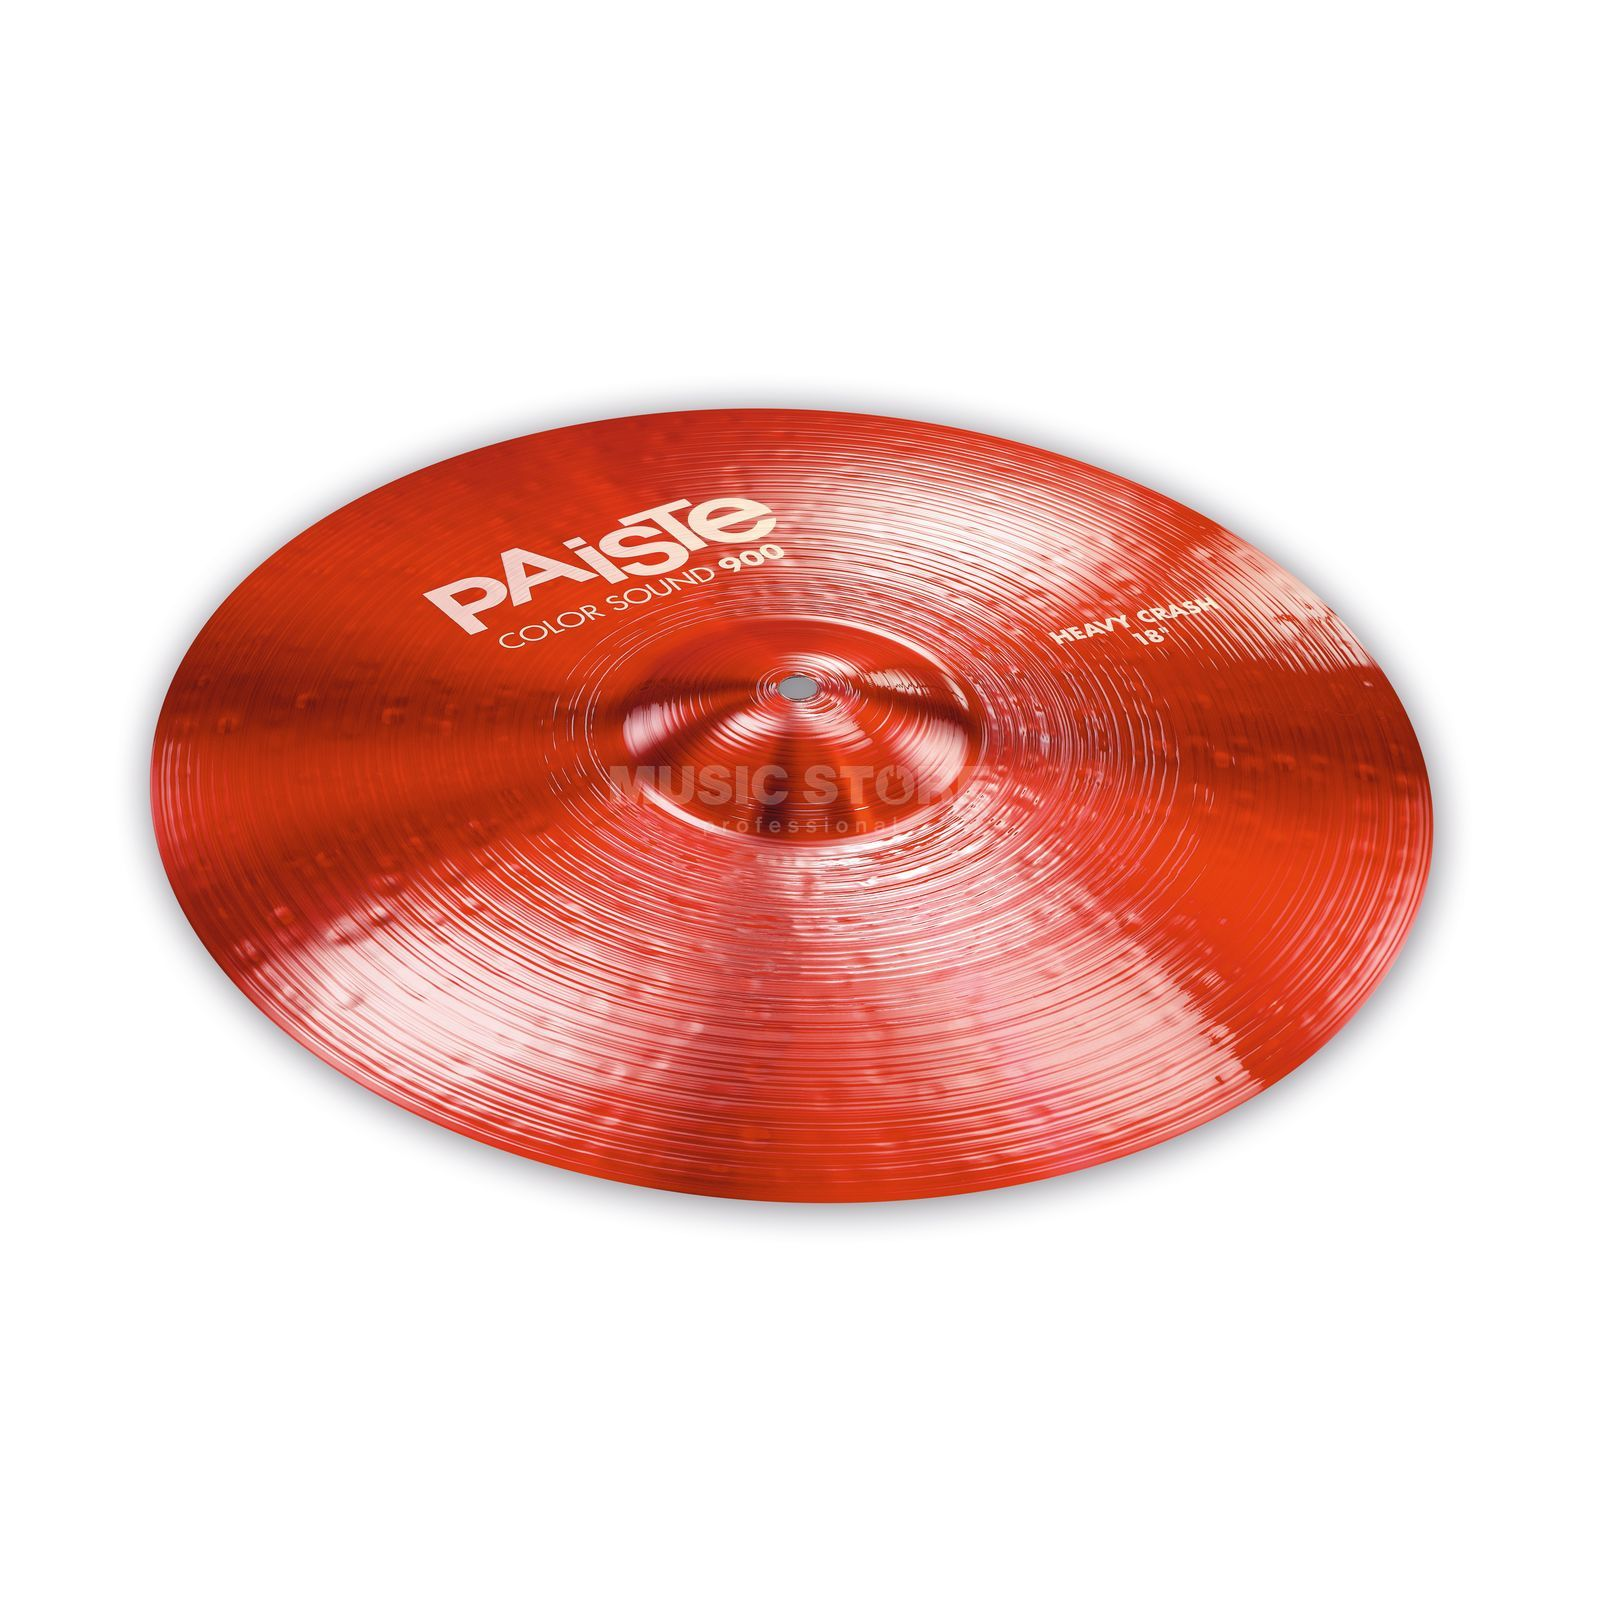 "Paiste CS 900 Heavy Crash 18"" Color Sound Red Product Image"